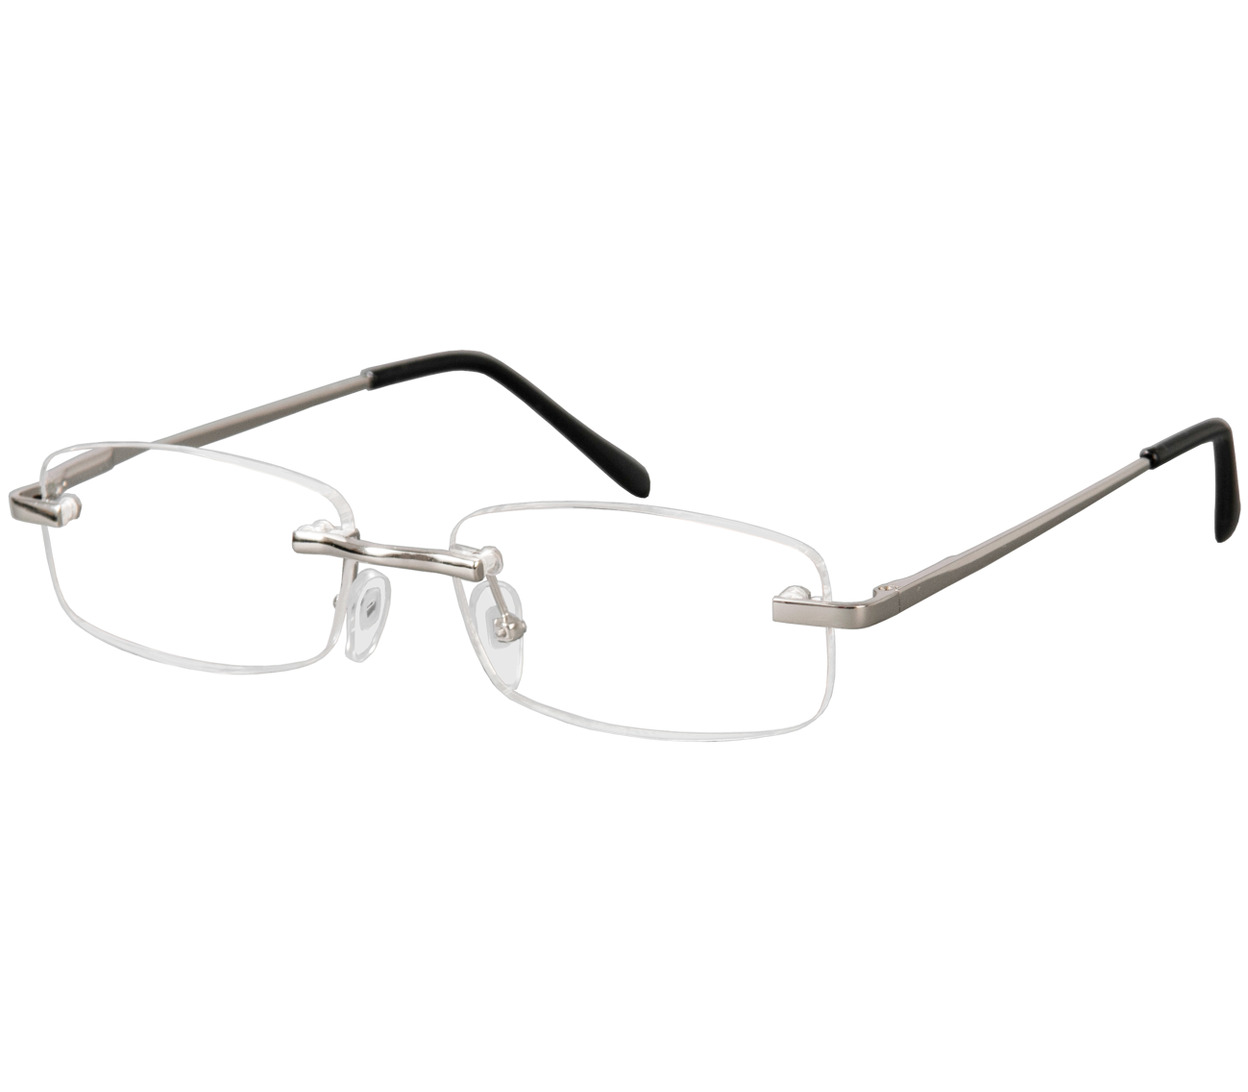 Main Image (Angle) - Oslo (Silver) Rimless Reading Glasses